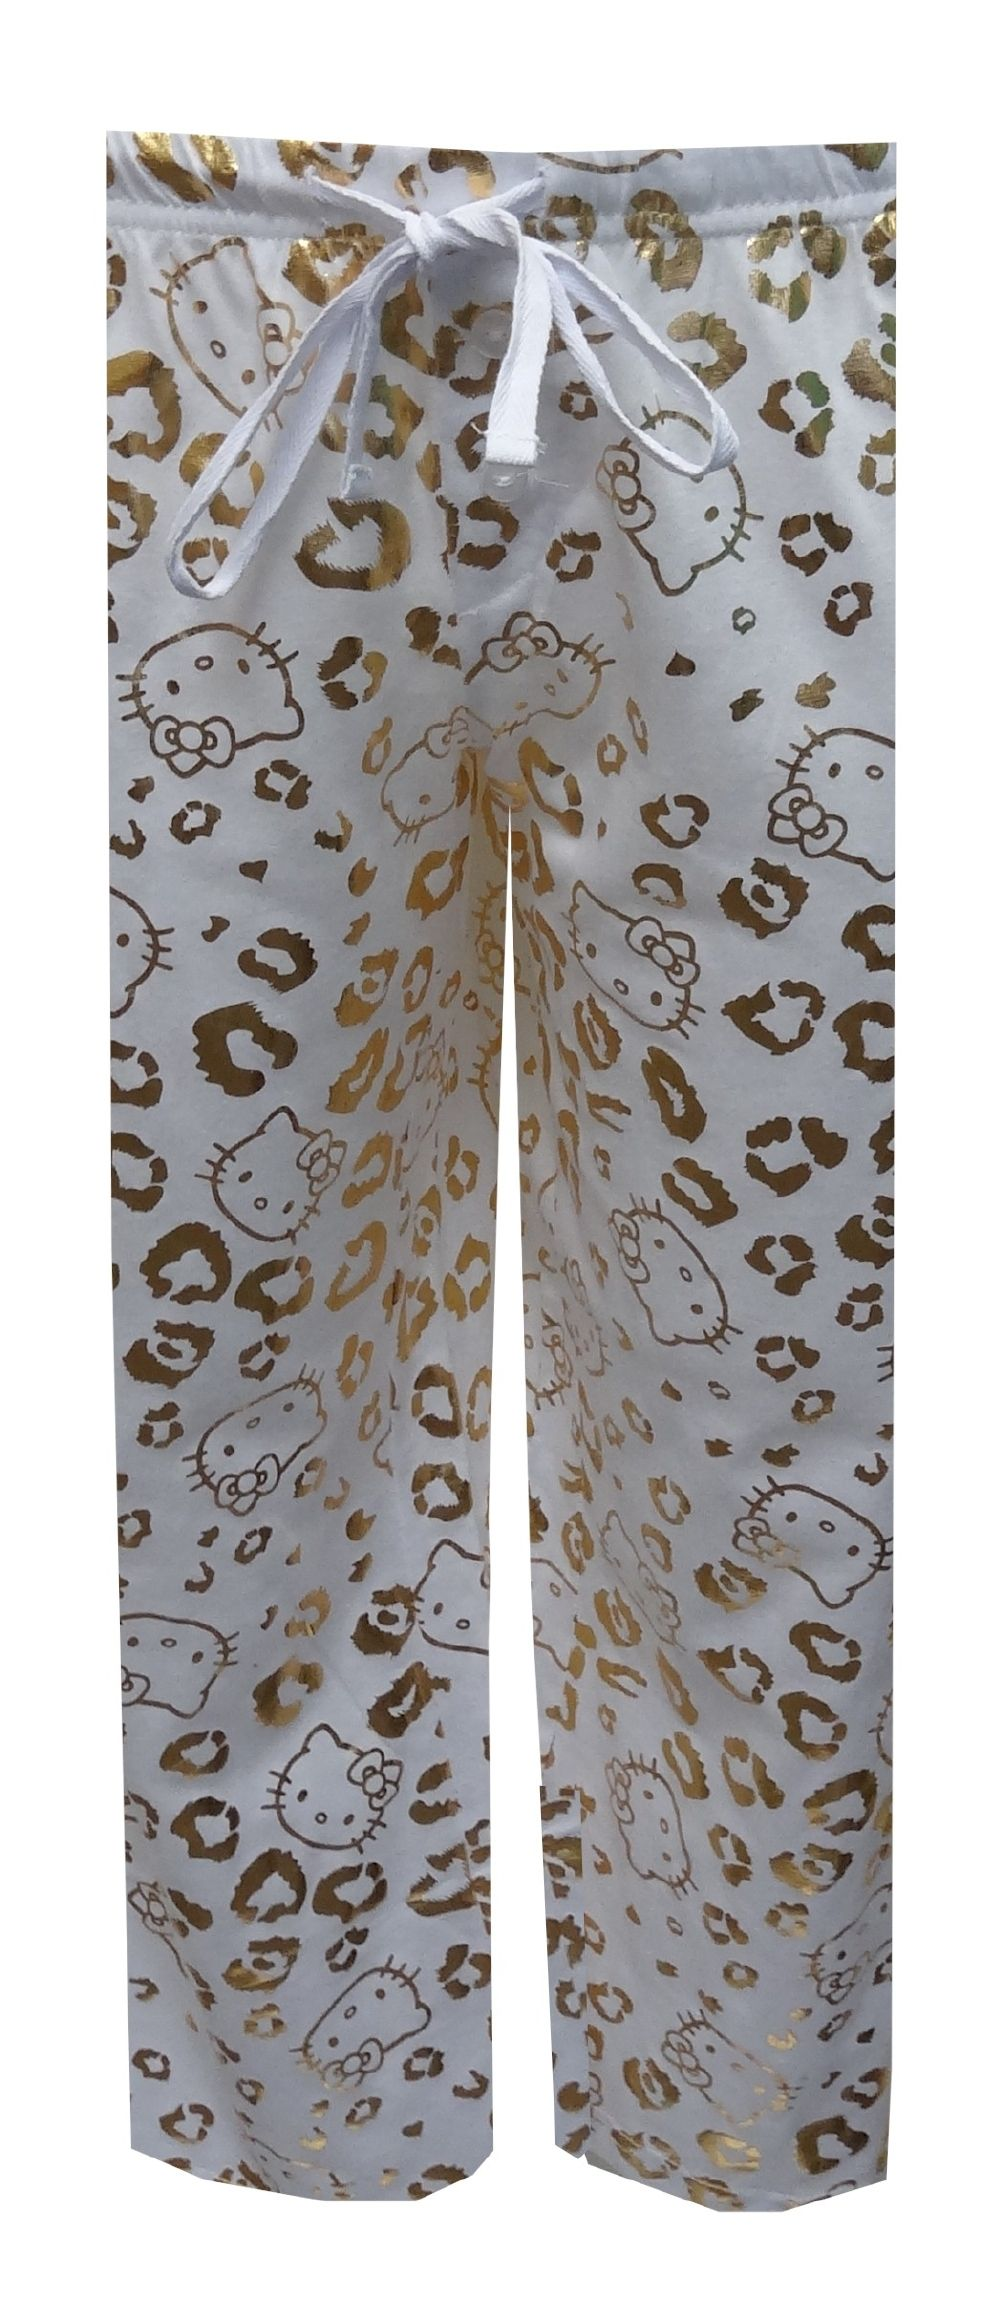 2878bdb88 Hello Kitty Gold Foil Leopard Capri Lounge Pants, $18.50 It's time to  shine! These capri length lounge pants for women feature a leopard print  pattern and ...